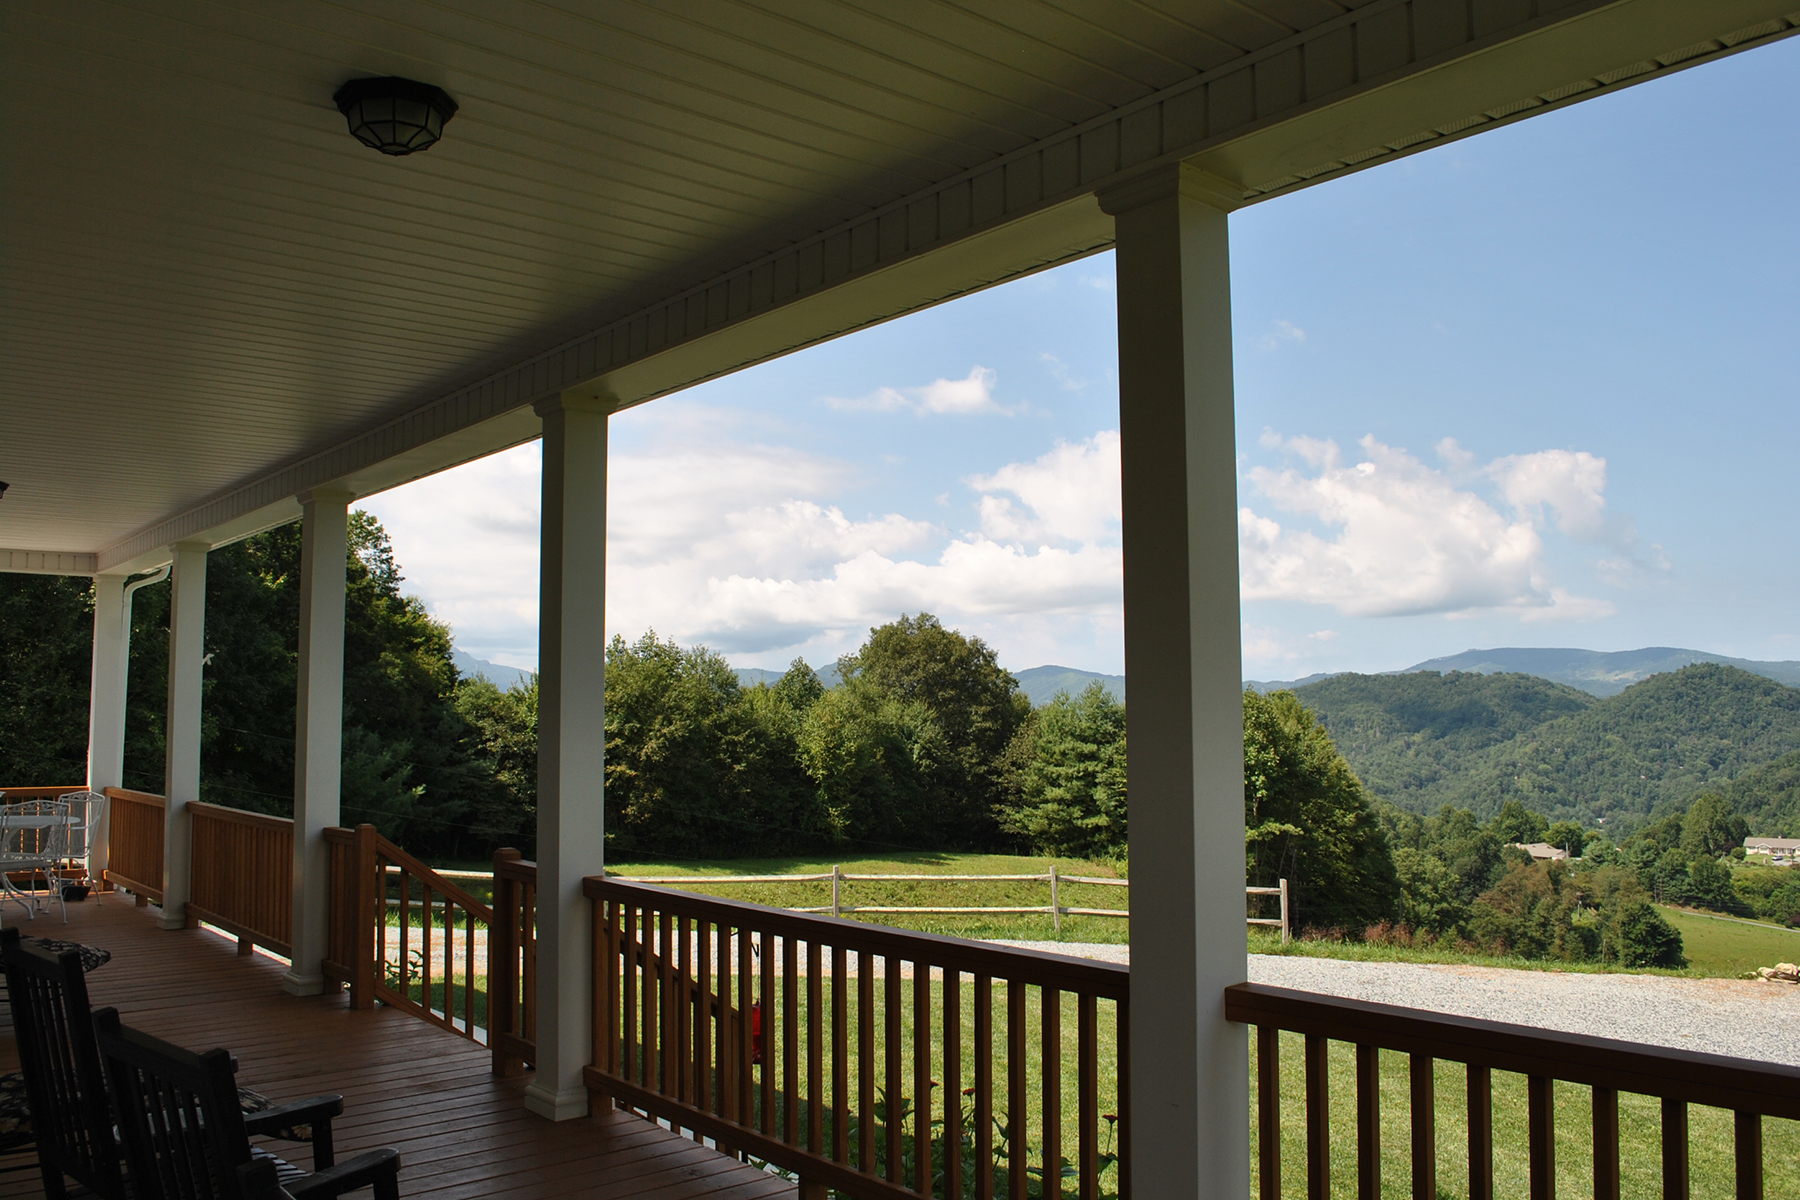 Single Family Home for Sale at MOUNTAIN ESTATE 311 Crestridge Lane Ln Boone, North Carolina, 28607 United States